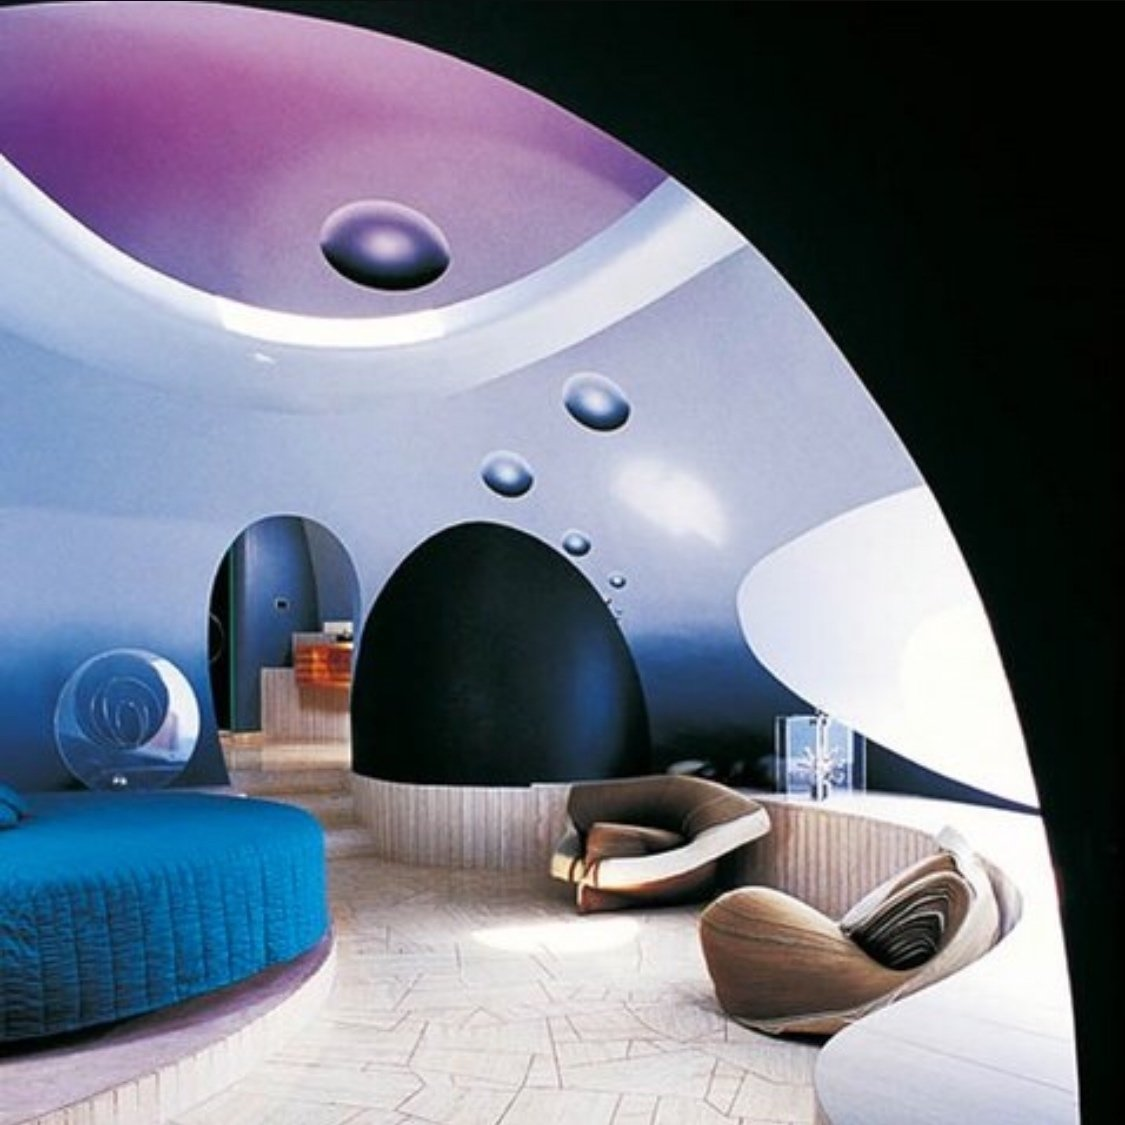 Pierre Cardin's Palais Bulles (bubble palace) by Antti Lovag 1975  The Future was... by Chris Deam